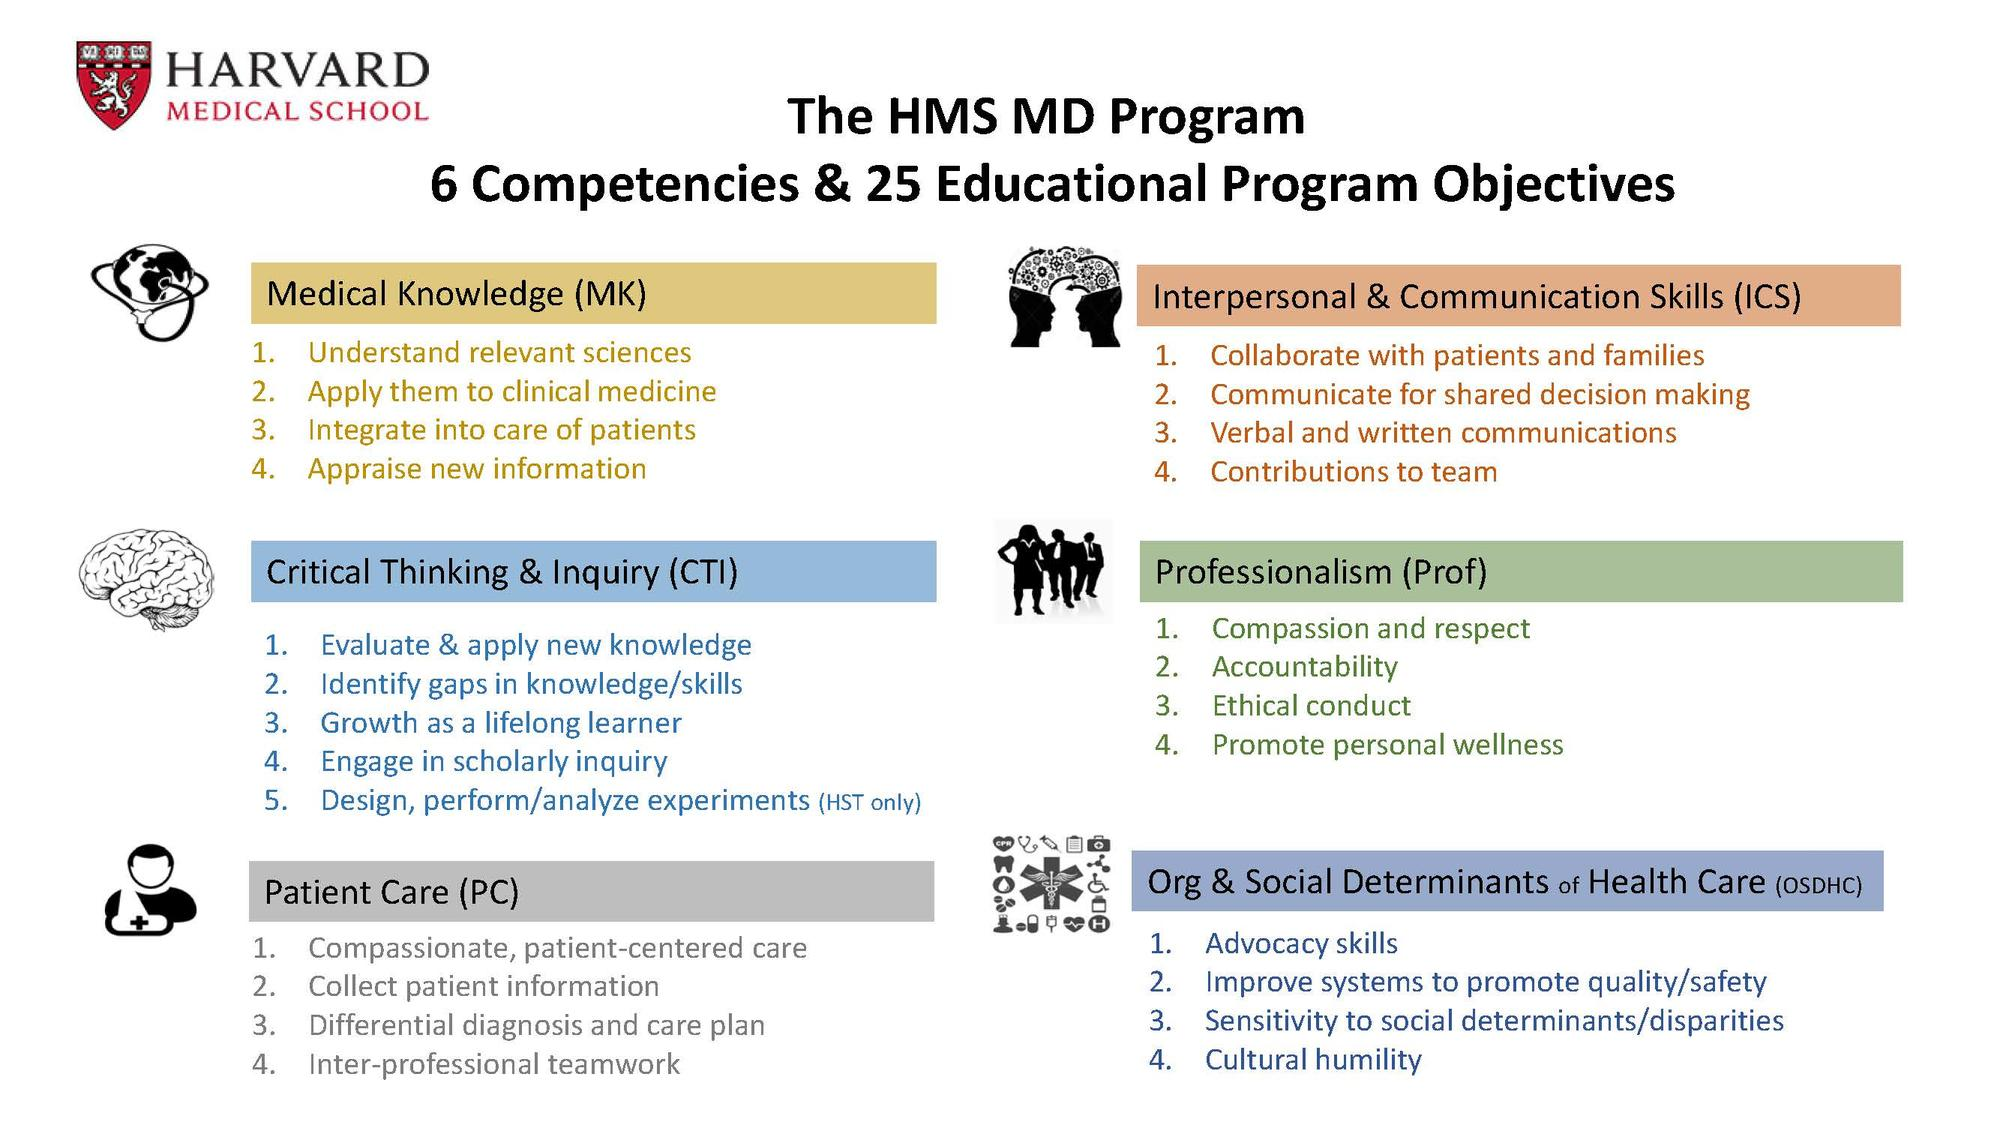 Competencies and educational program objectives